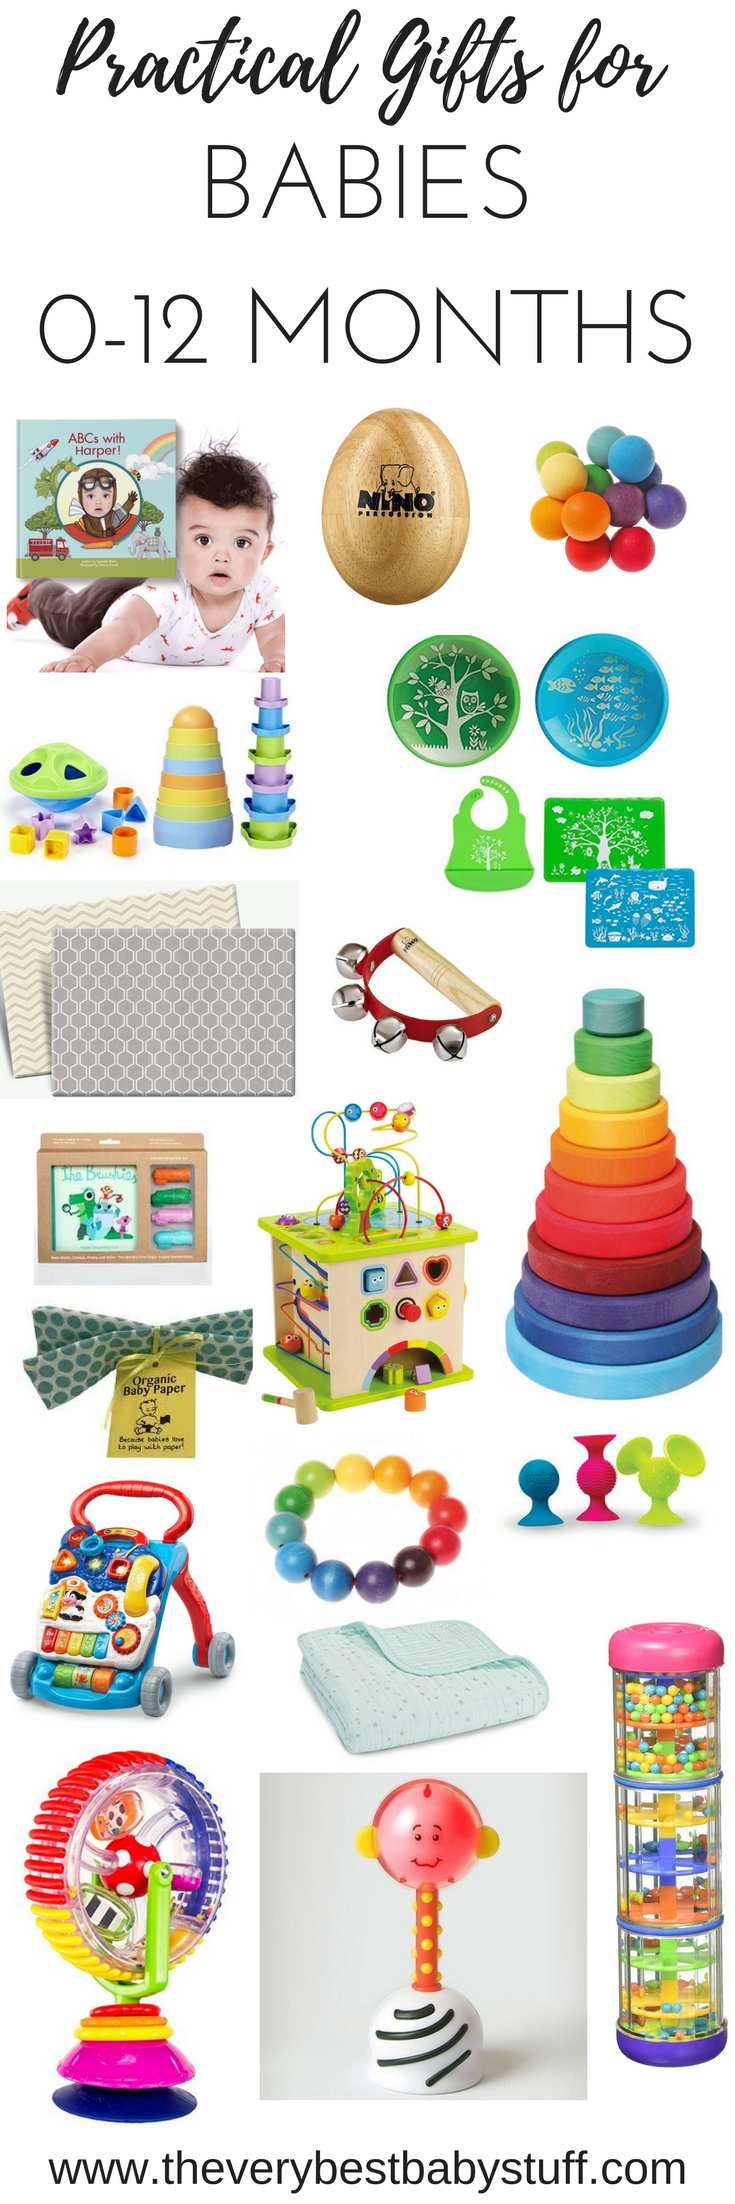 2016 baby gift guide.png